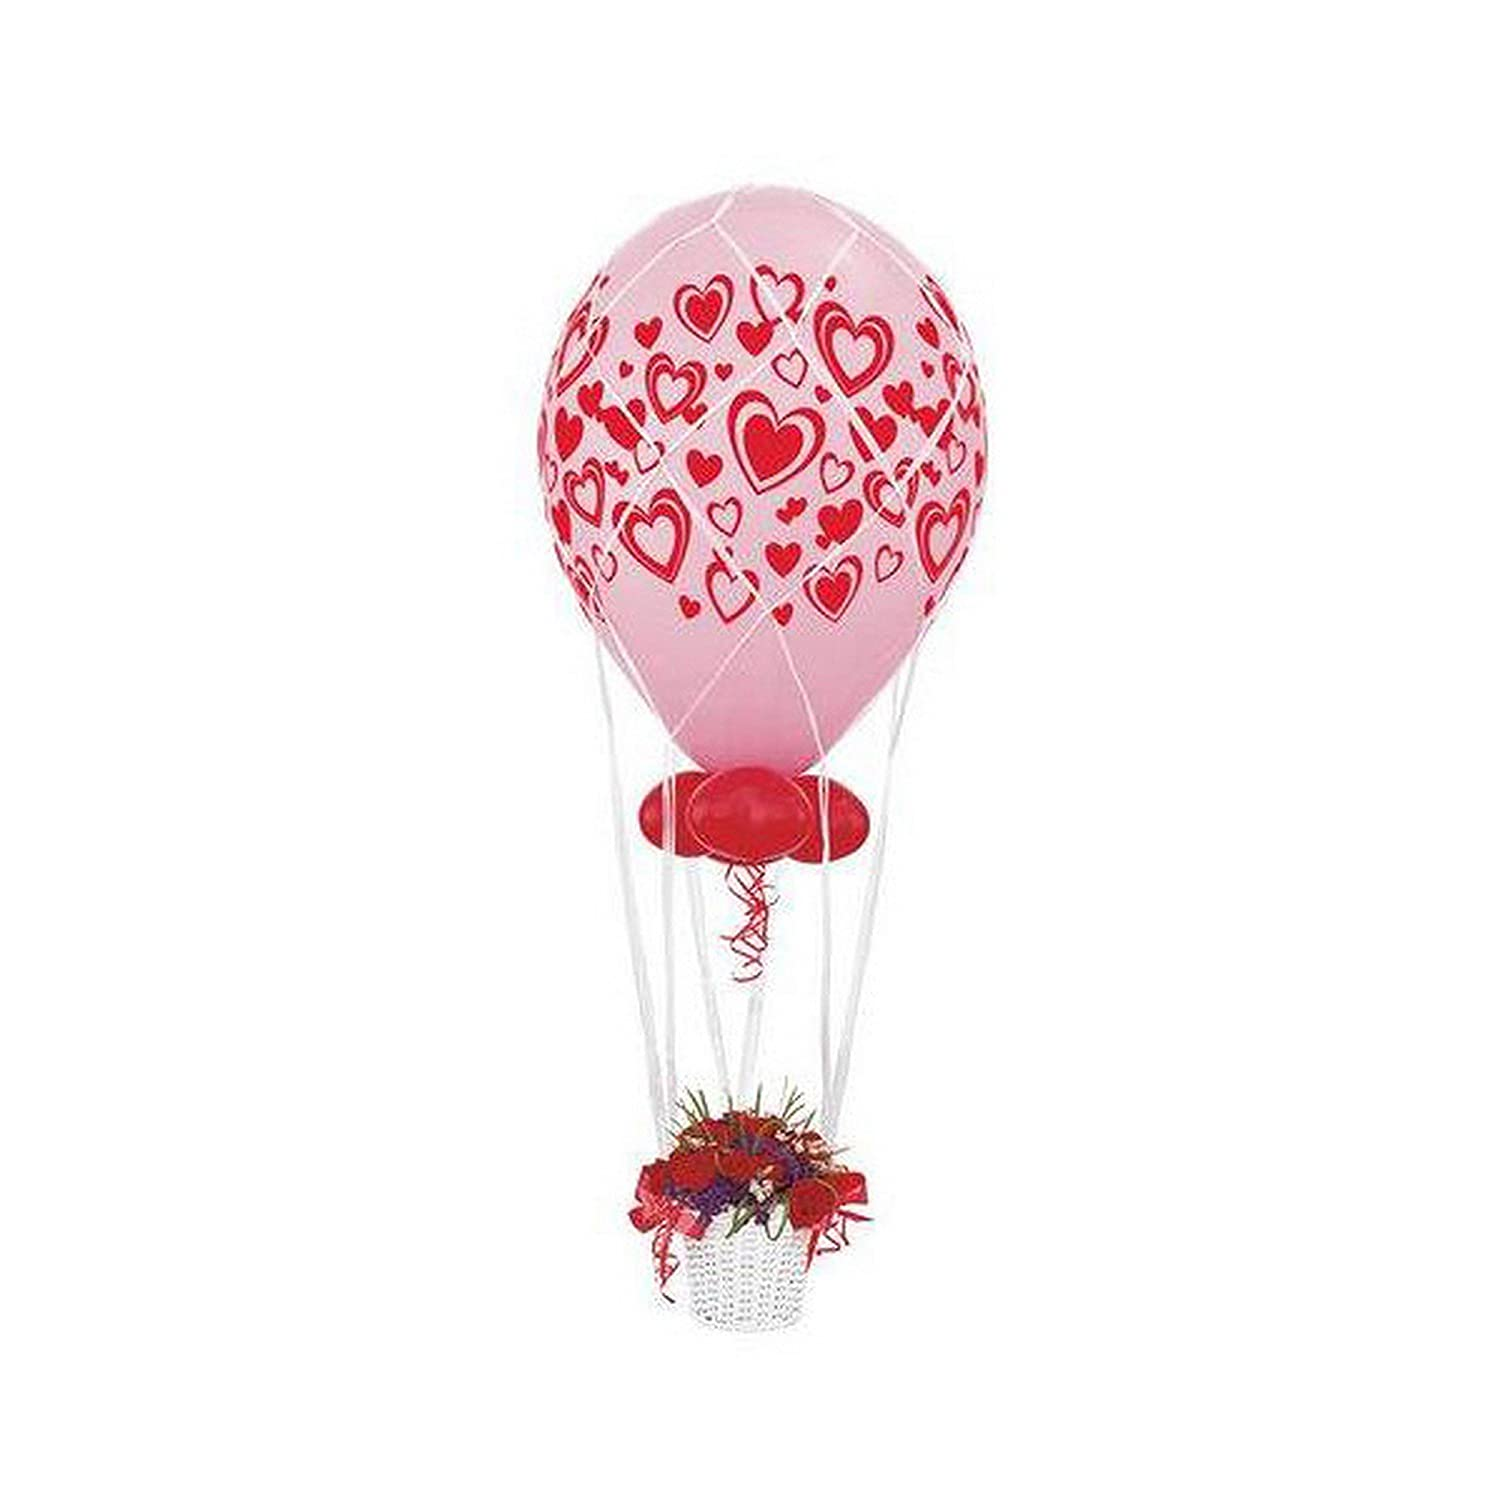 White UK Size  16 Inch Qualatex White Balloon Centrepiece Netting (Product Only Contains Netting And Not Additional Items In Image)